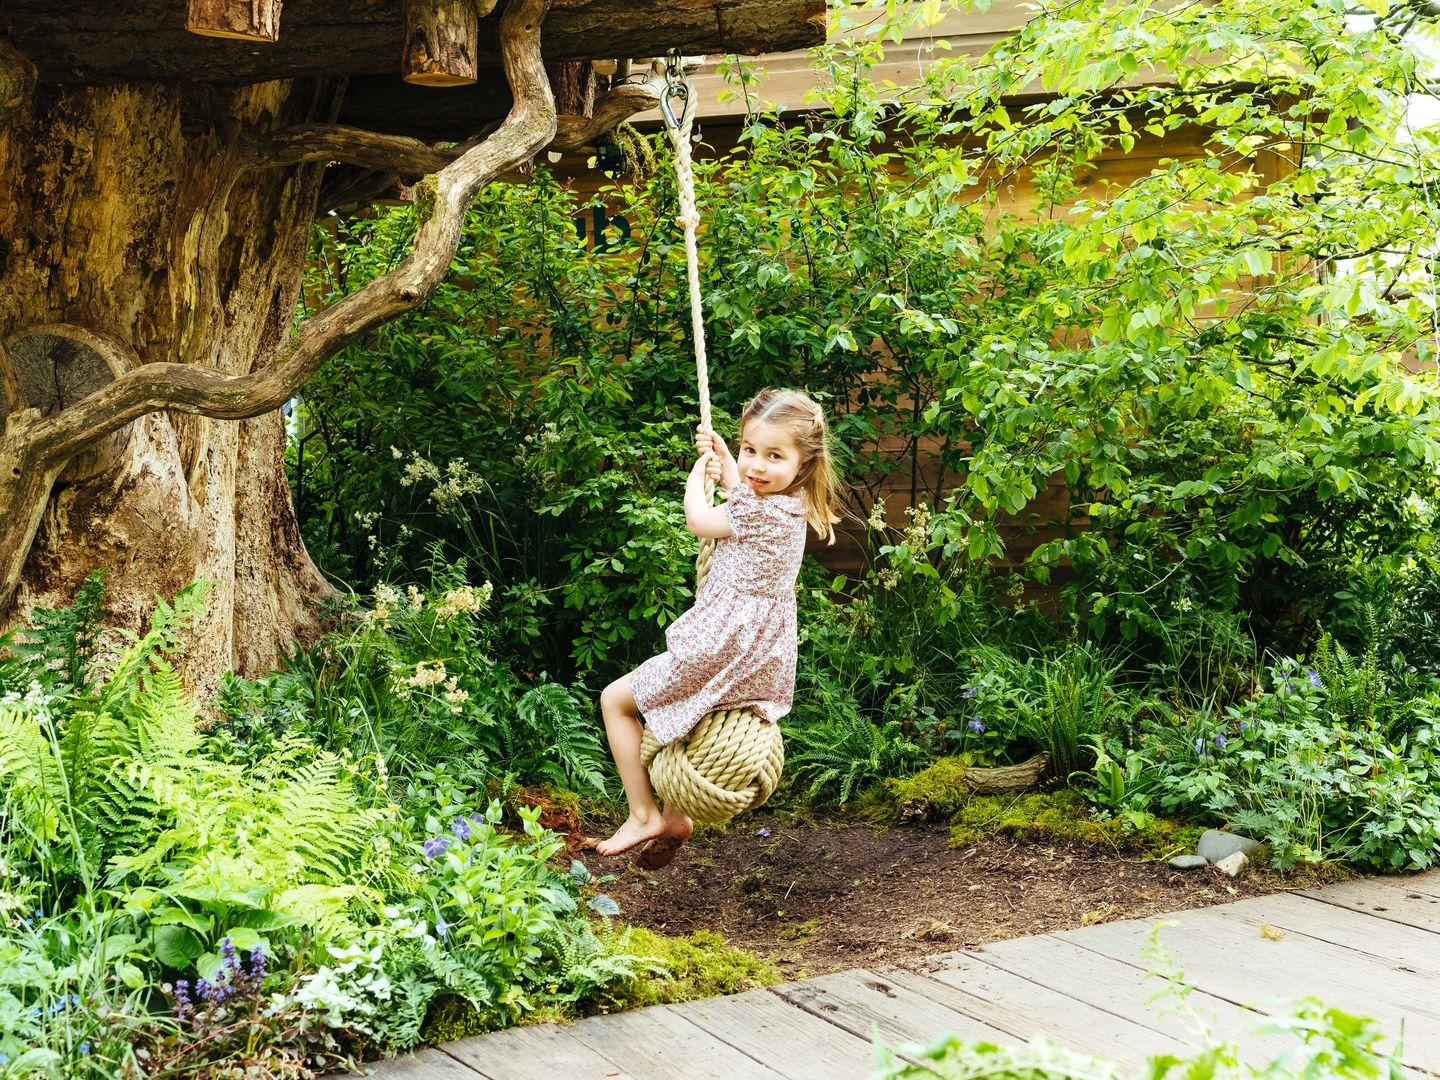 """<p>Princess Charlotte <a href=""""https://www.townandcountrymag.com/society/tradition/a27520757/kate-middleton-william-george-charlotte-louis-photos-chelsea-flower-show/"""" target=""""_blank"""">plays on a swing in the garden created</a> by her mom, the Duchess of Cambridge, at the Chelsea Flower Show. The royals released a number of sweet photos of George, Charlotte, and Louis playing in the new space, which was designed to encourage families to spend time in nature. </p>"""